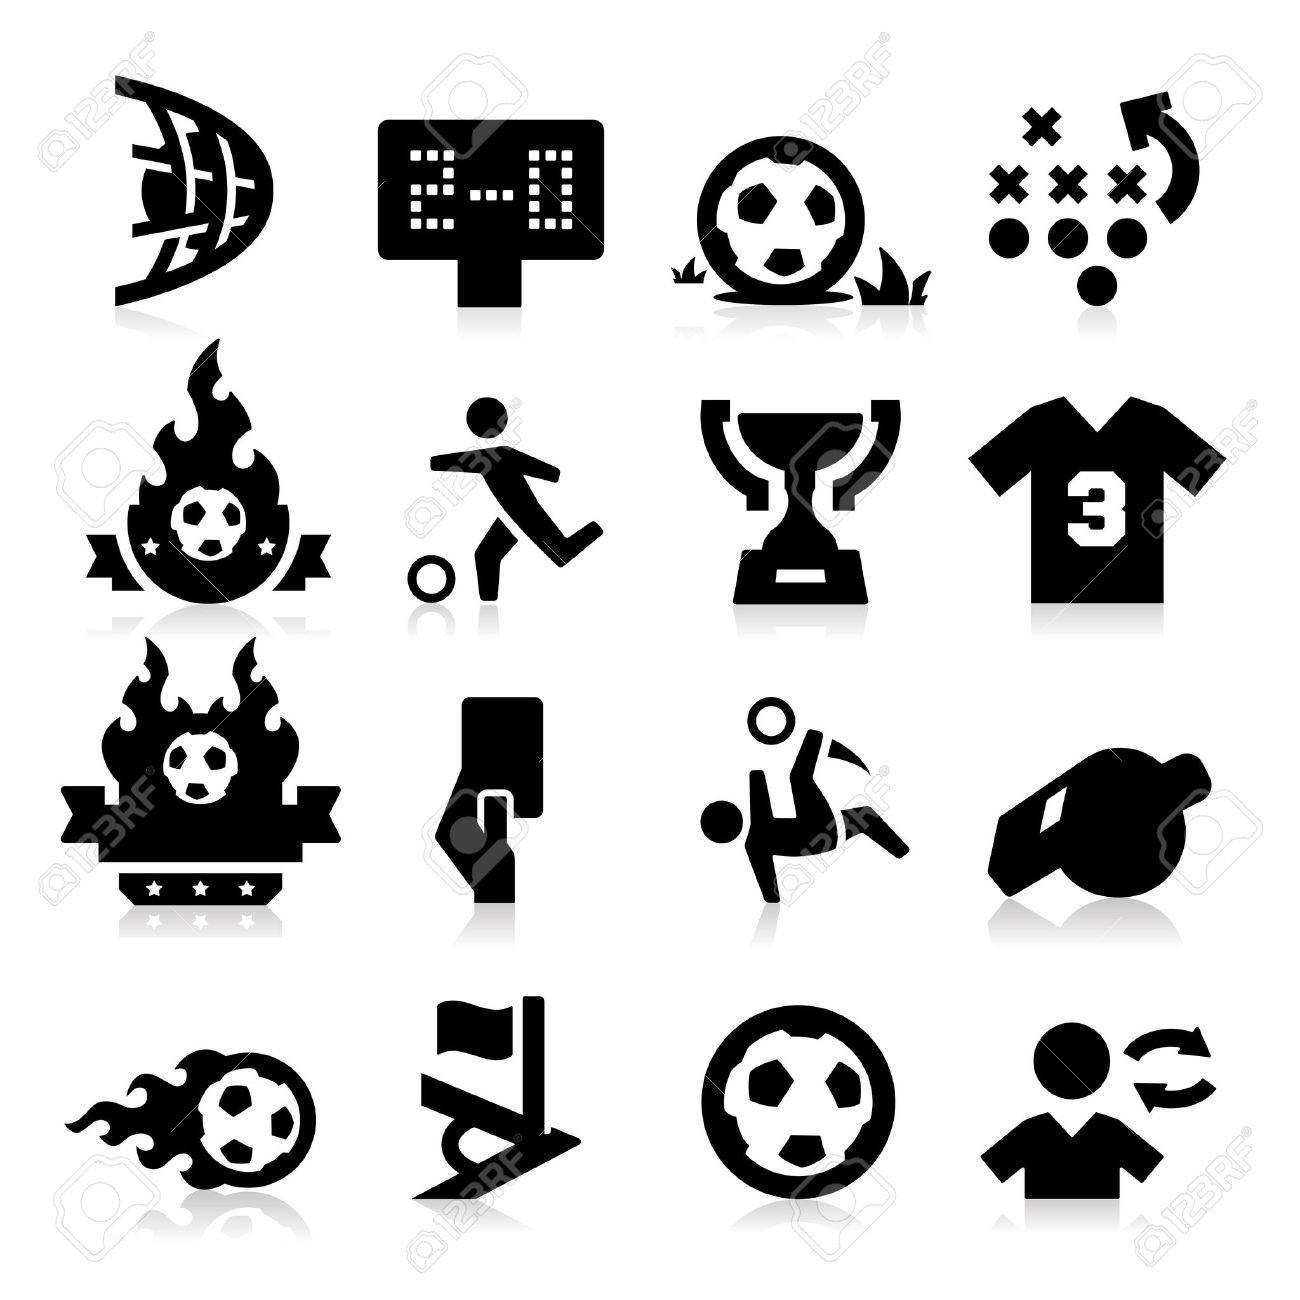 Soccer Icons Stock Vector - 17794124